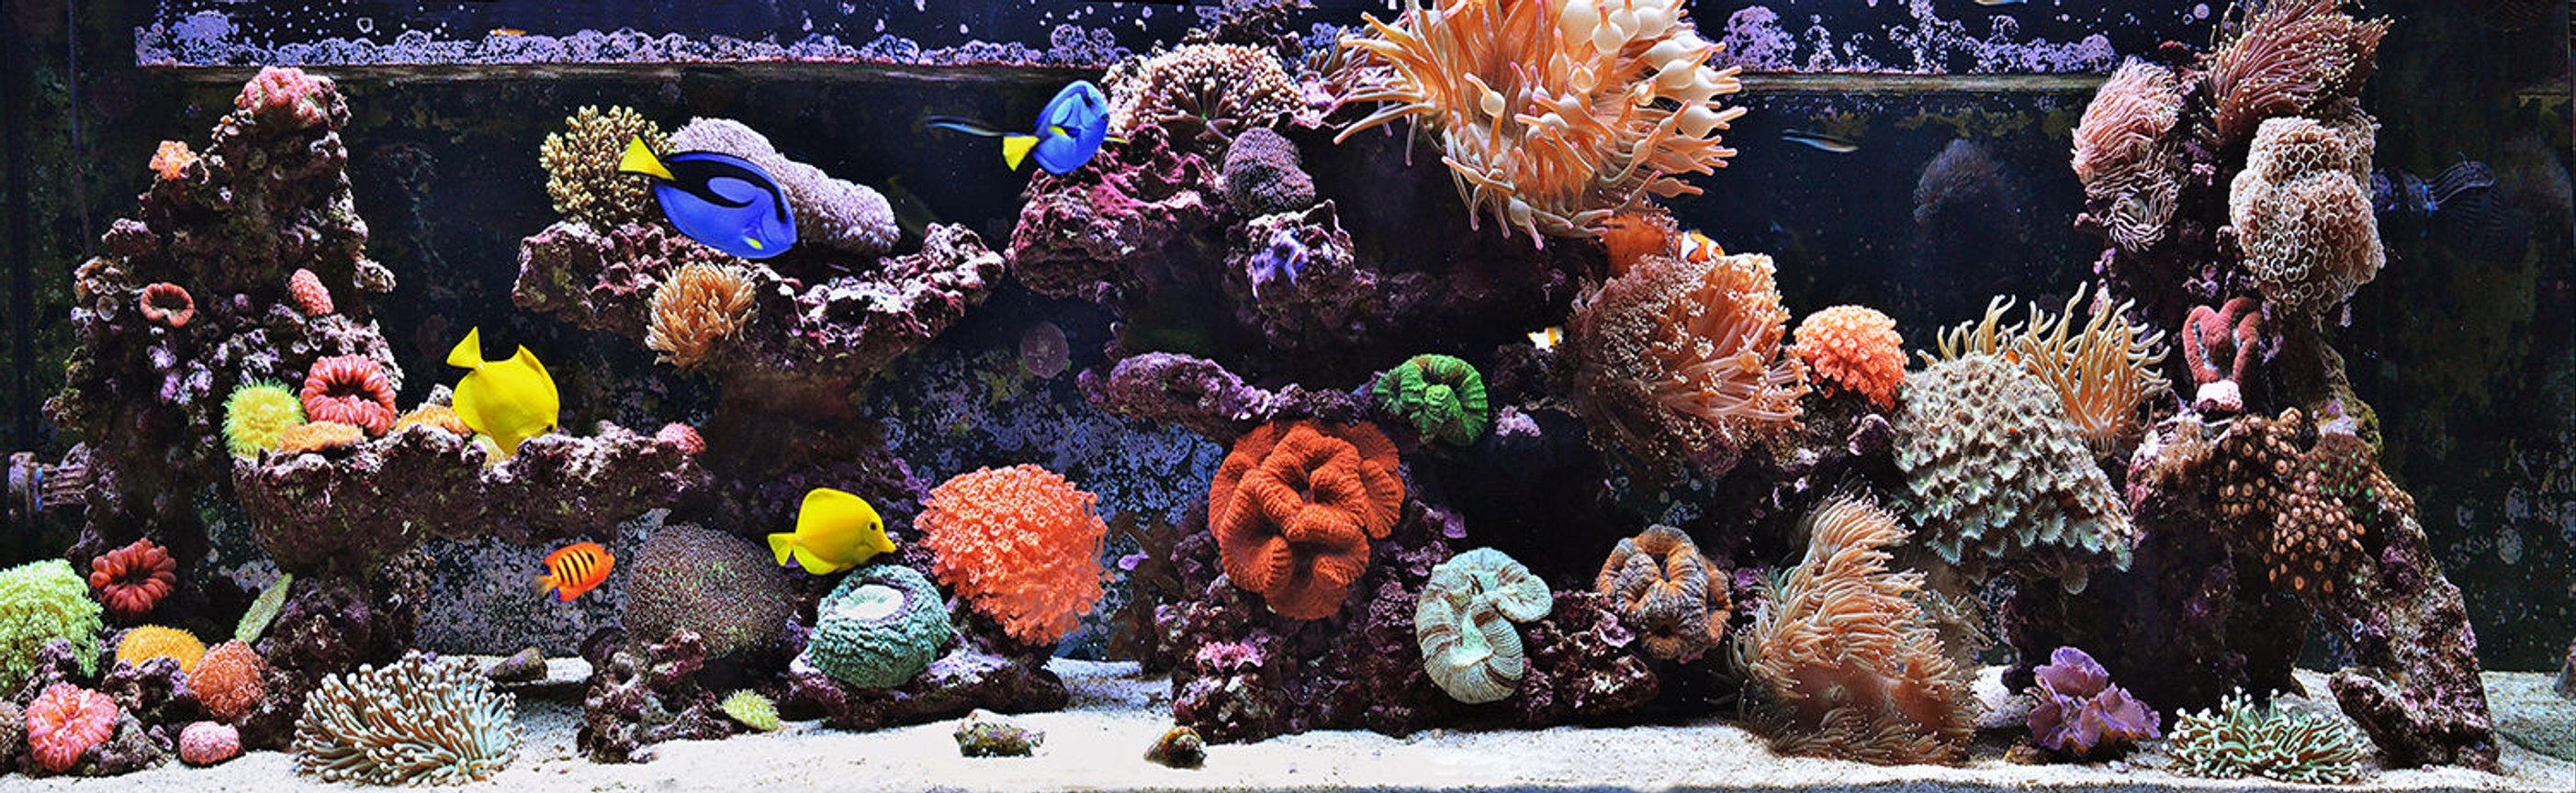 240 gallons reef tank (mostly live coral and fish) - 240g Mixed Reef Tank